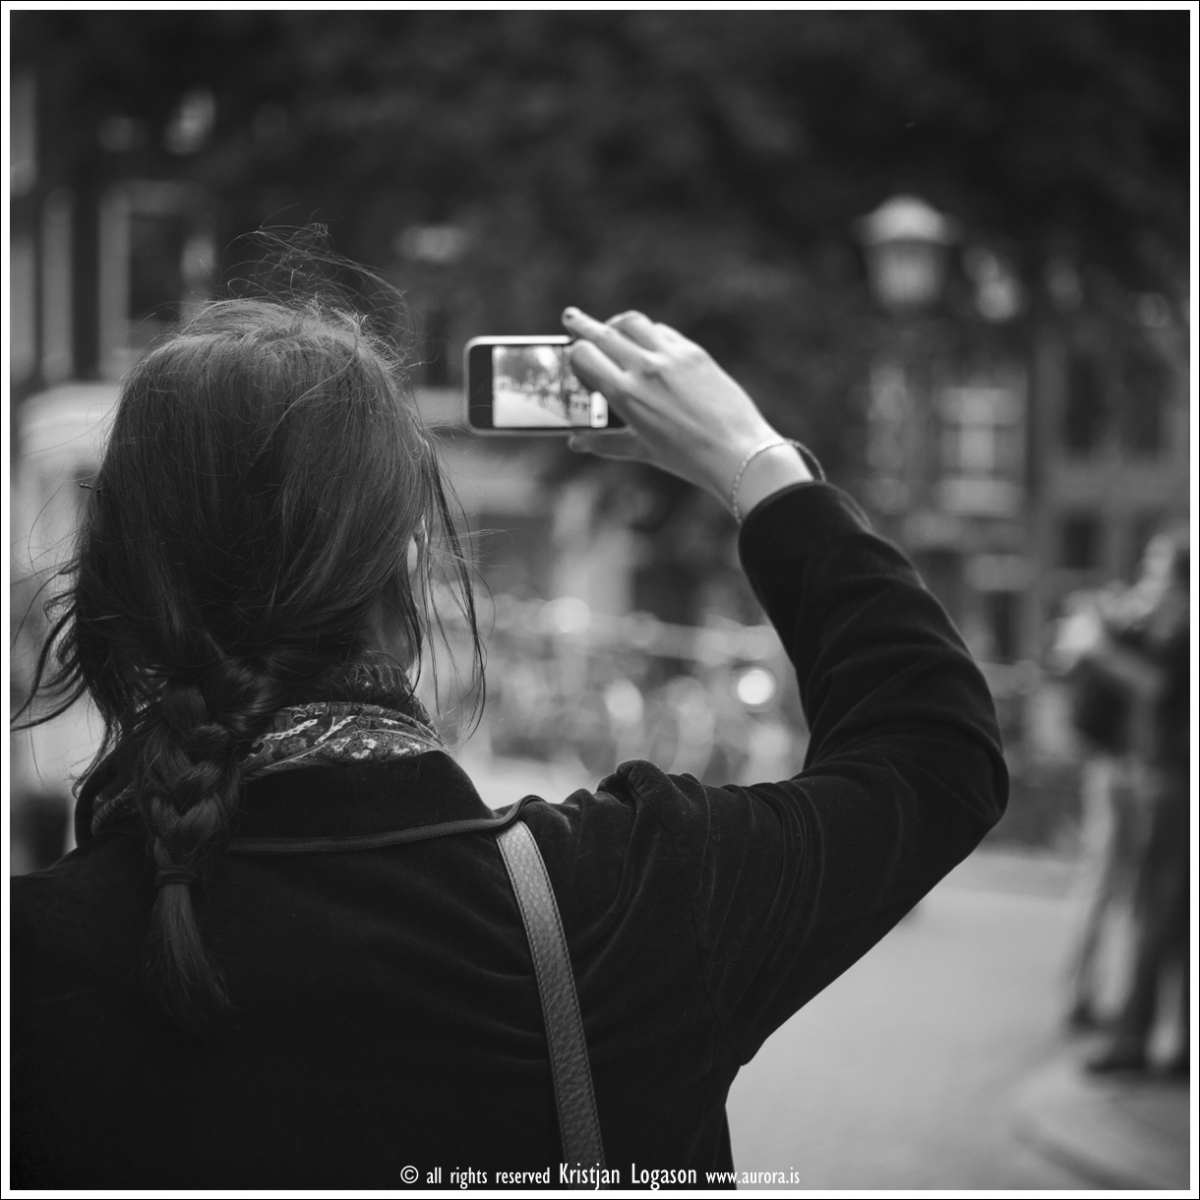 Woman tourist with braids in here hair standing on a street in central Amsterdam taking pictures with here iPhone